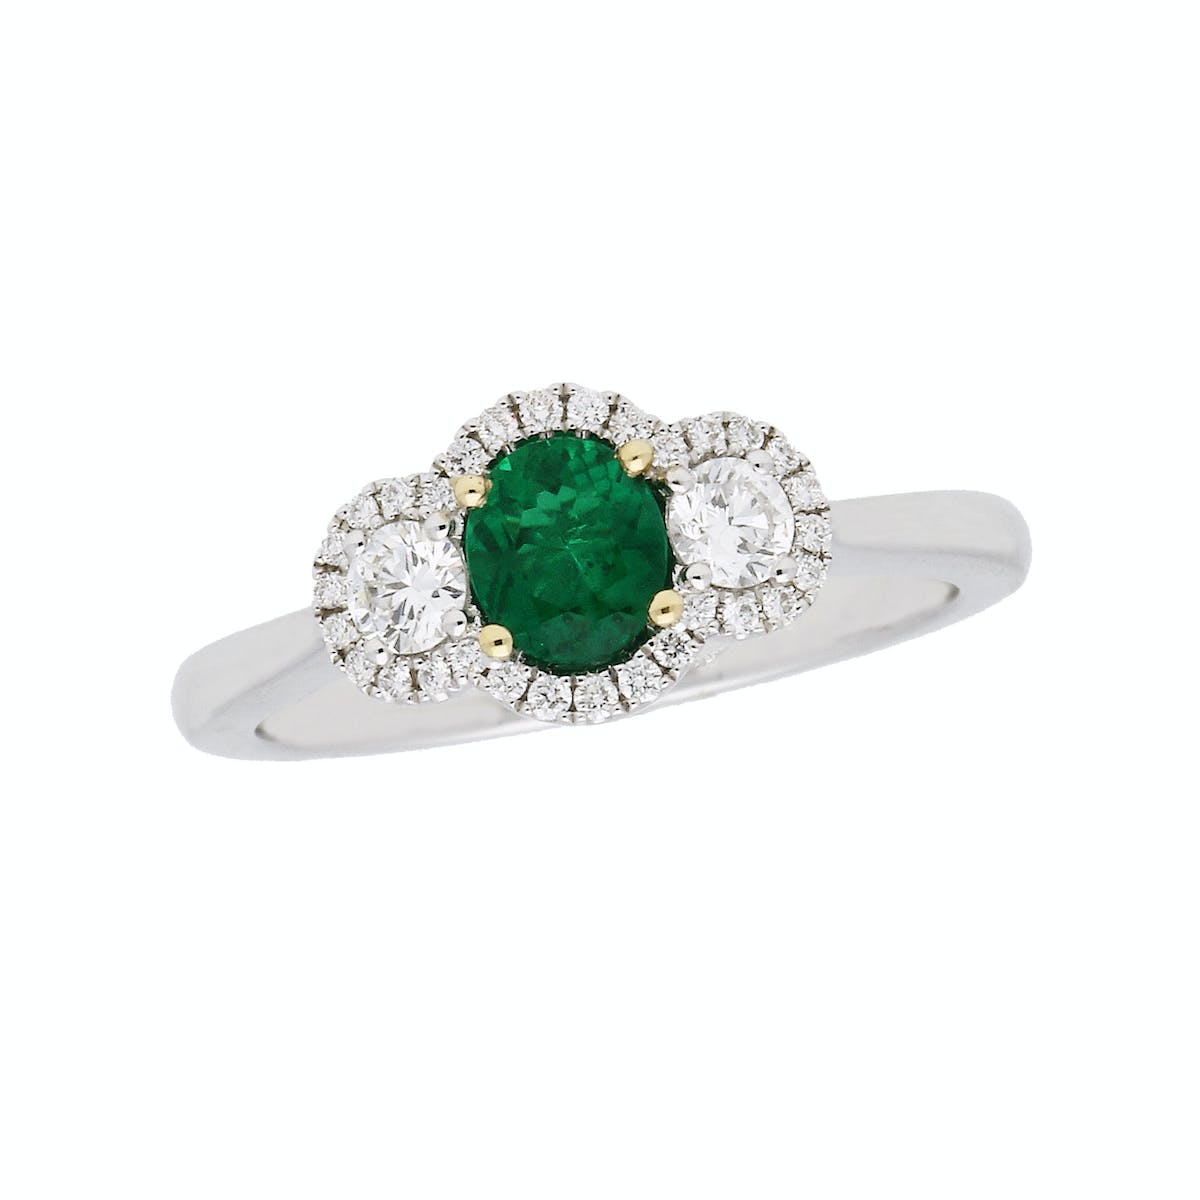 da3b53b56 18ct white gold emerald and diamond cluster ring. 1210313 A. Rings |  Cocktail Rings